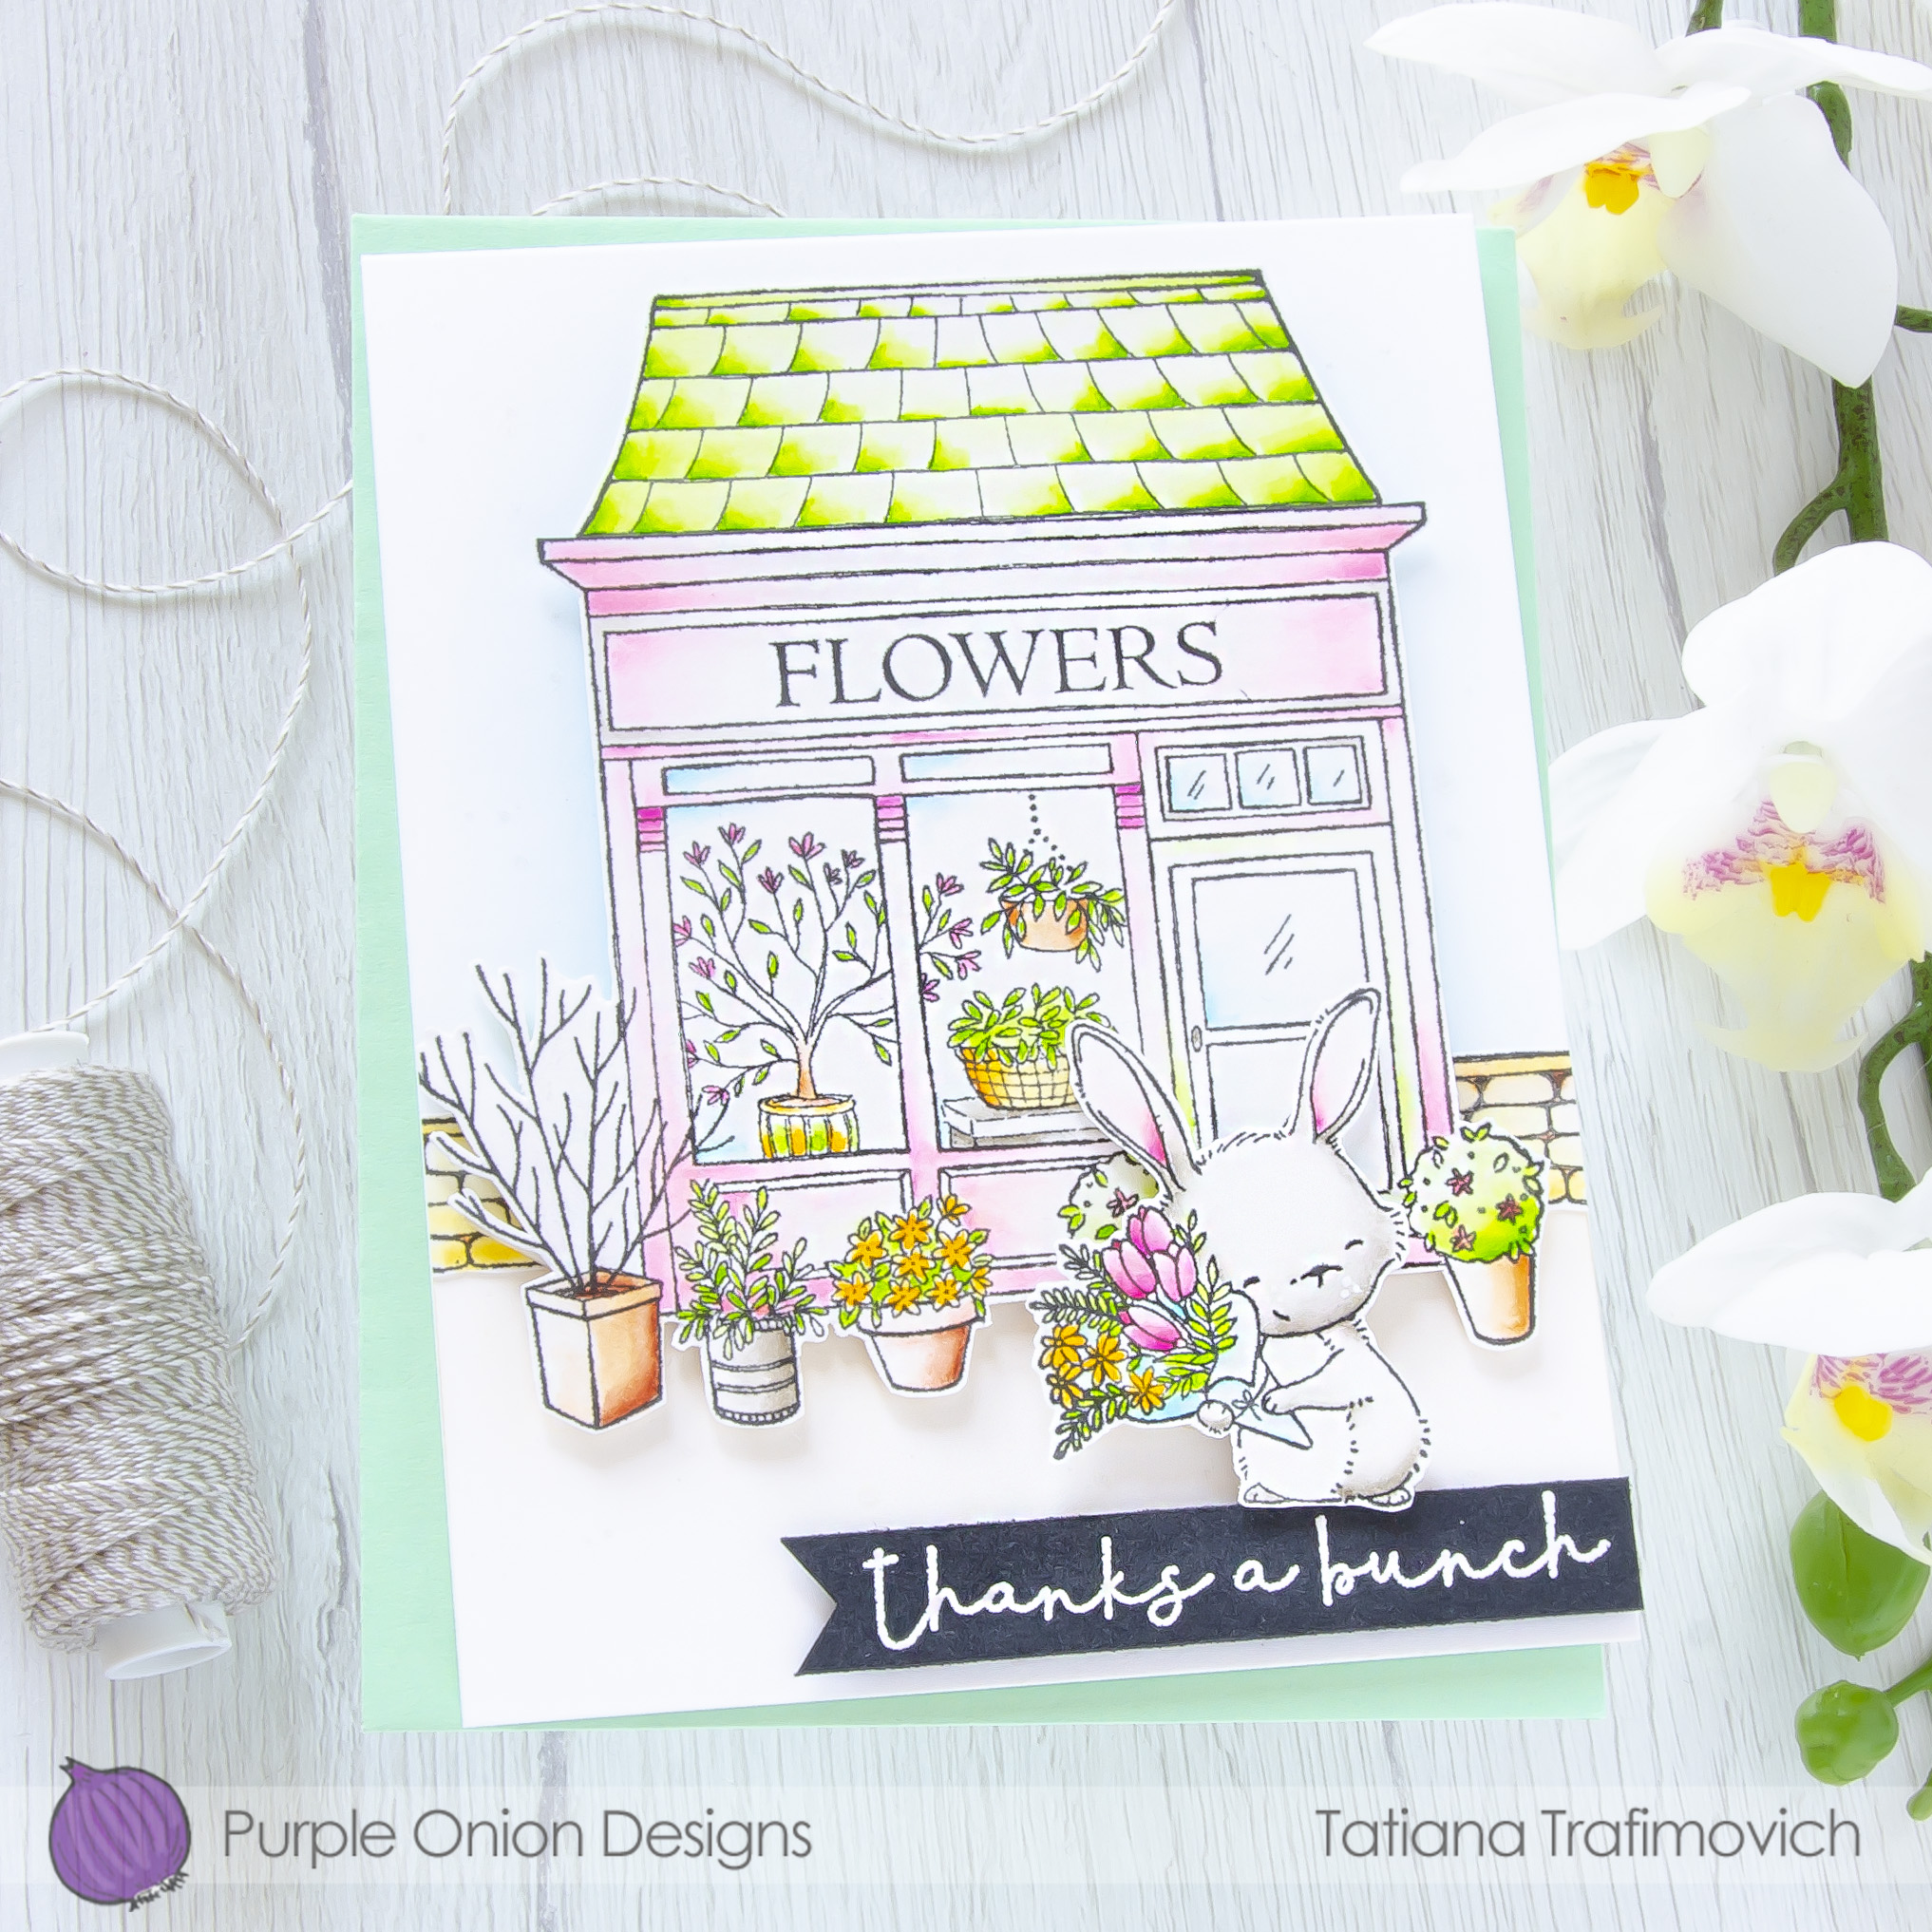 Thanks A Bunch #handmade card by Tatiana Trafimovich #tatianacraftandart - stamps by Purple Onion Designs